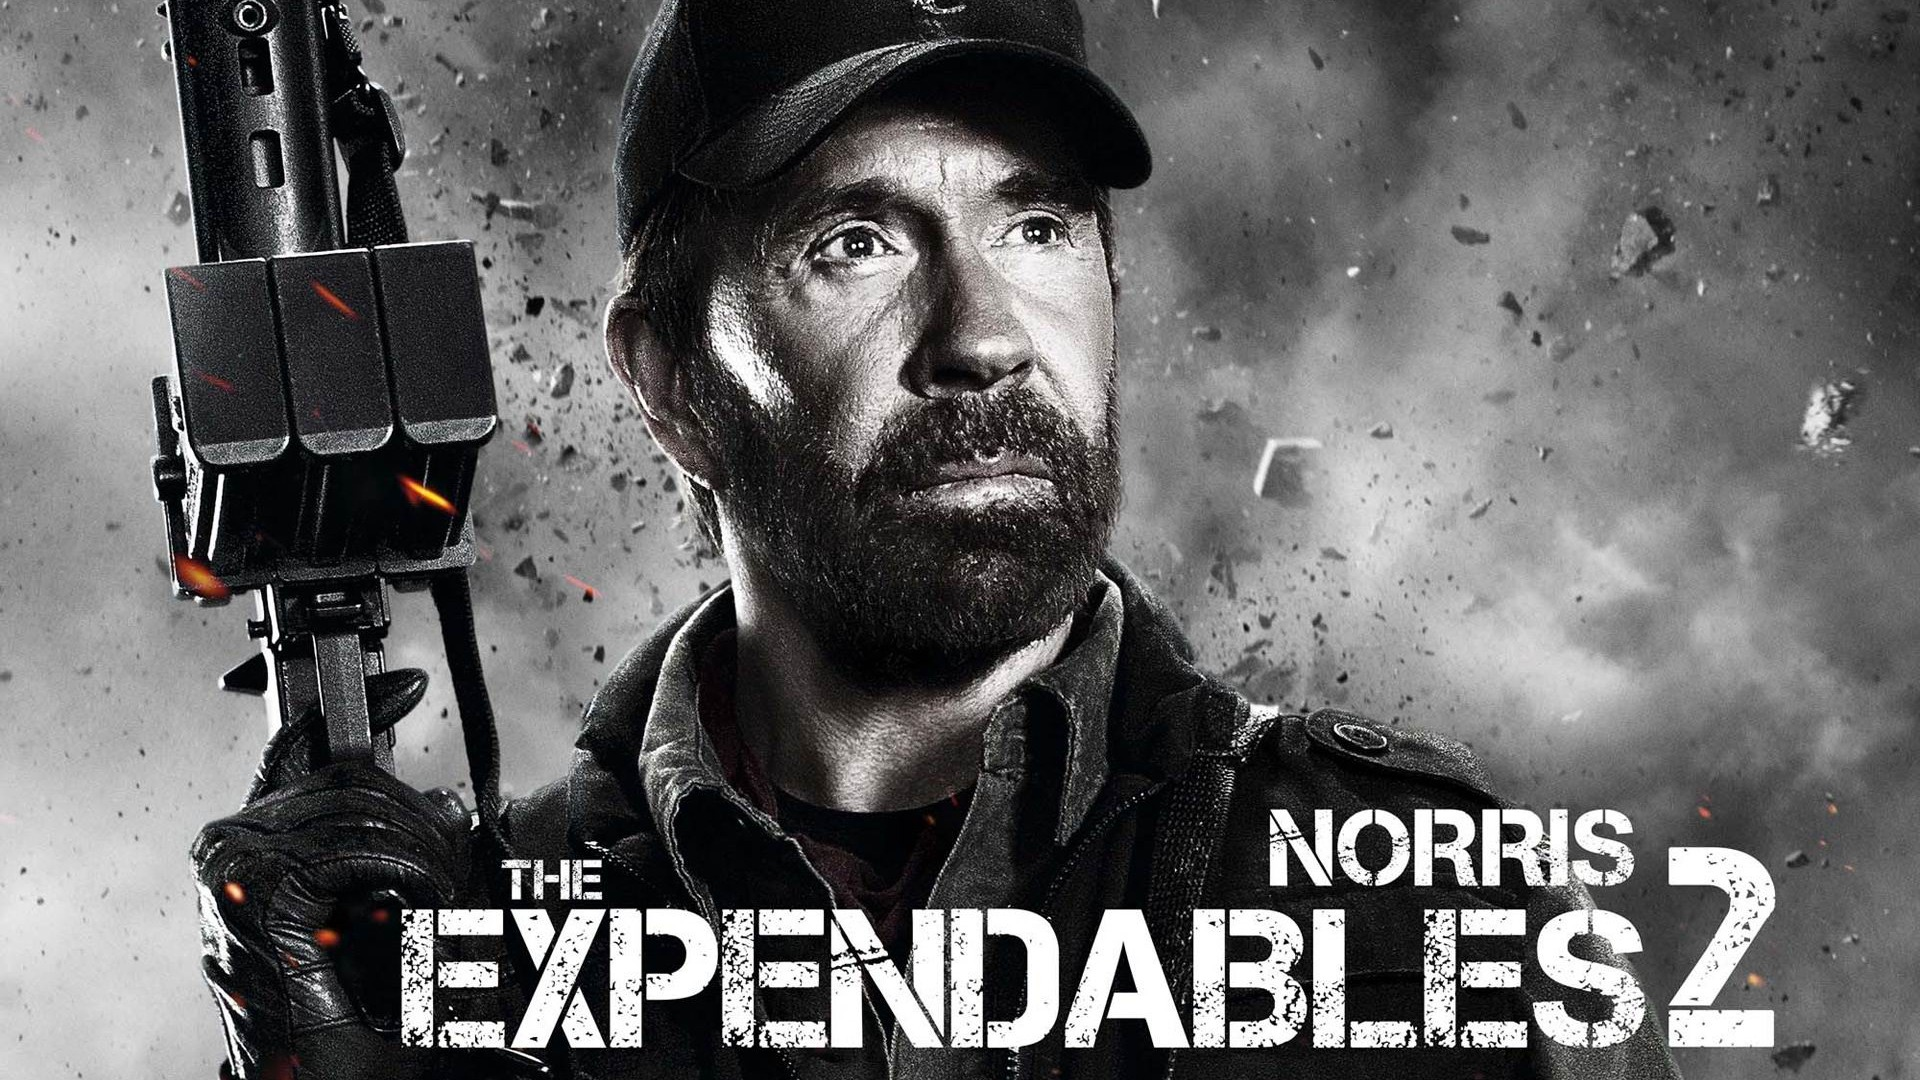 Chuck norris the expendables 2 hd 10wallpaper 1024x768 1152x864 1200x900 1280x960 1280x800 1280x1024 1366x768 1440x900 1680x1050 1600x1200 1920x1080 1920x1200 1920x1440 voltagebd Image collections